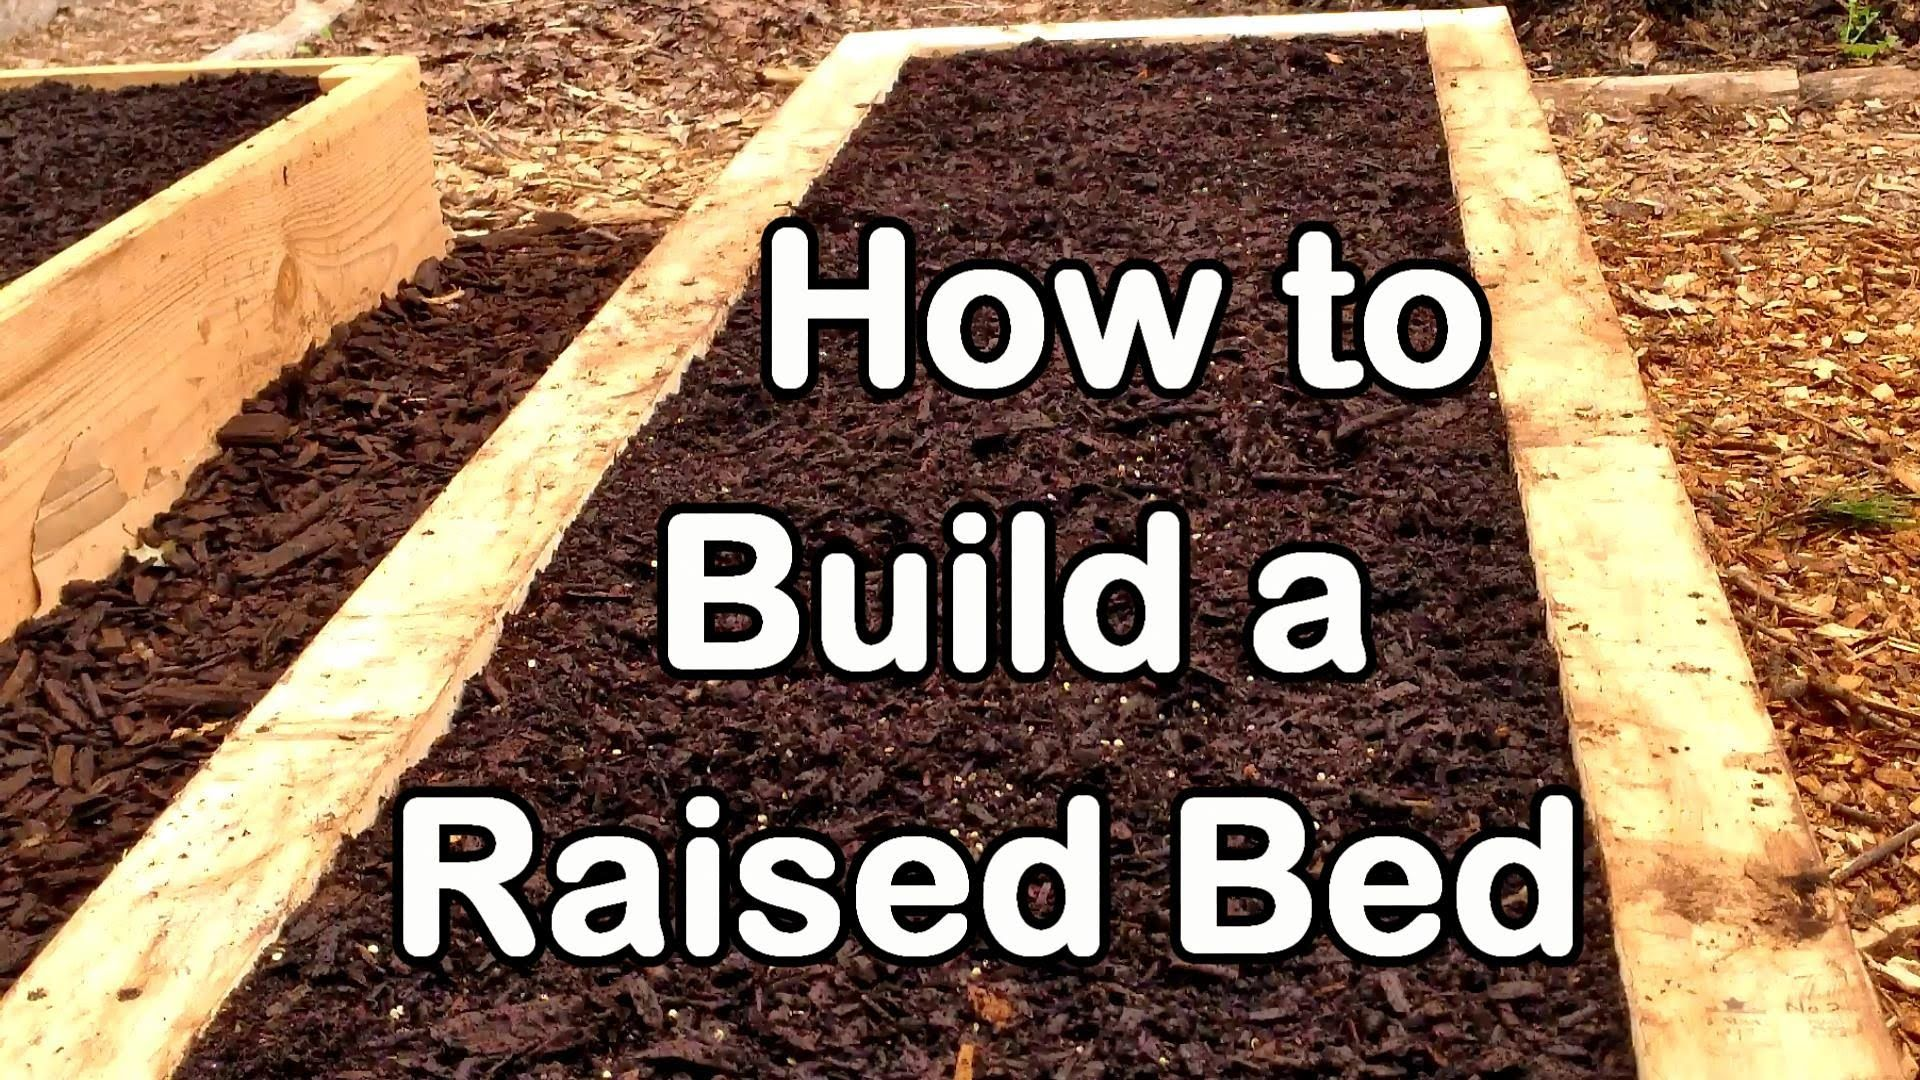 How to build a raised garden bed with wood easy ez u cheap